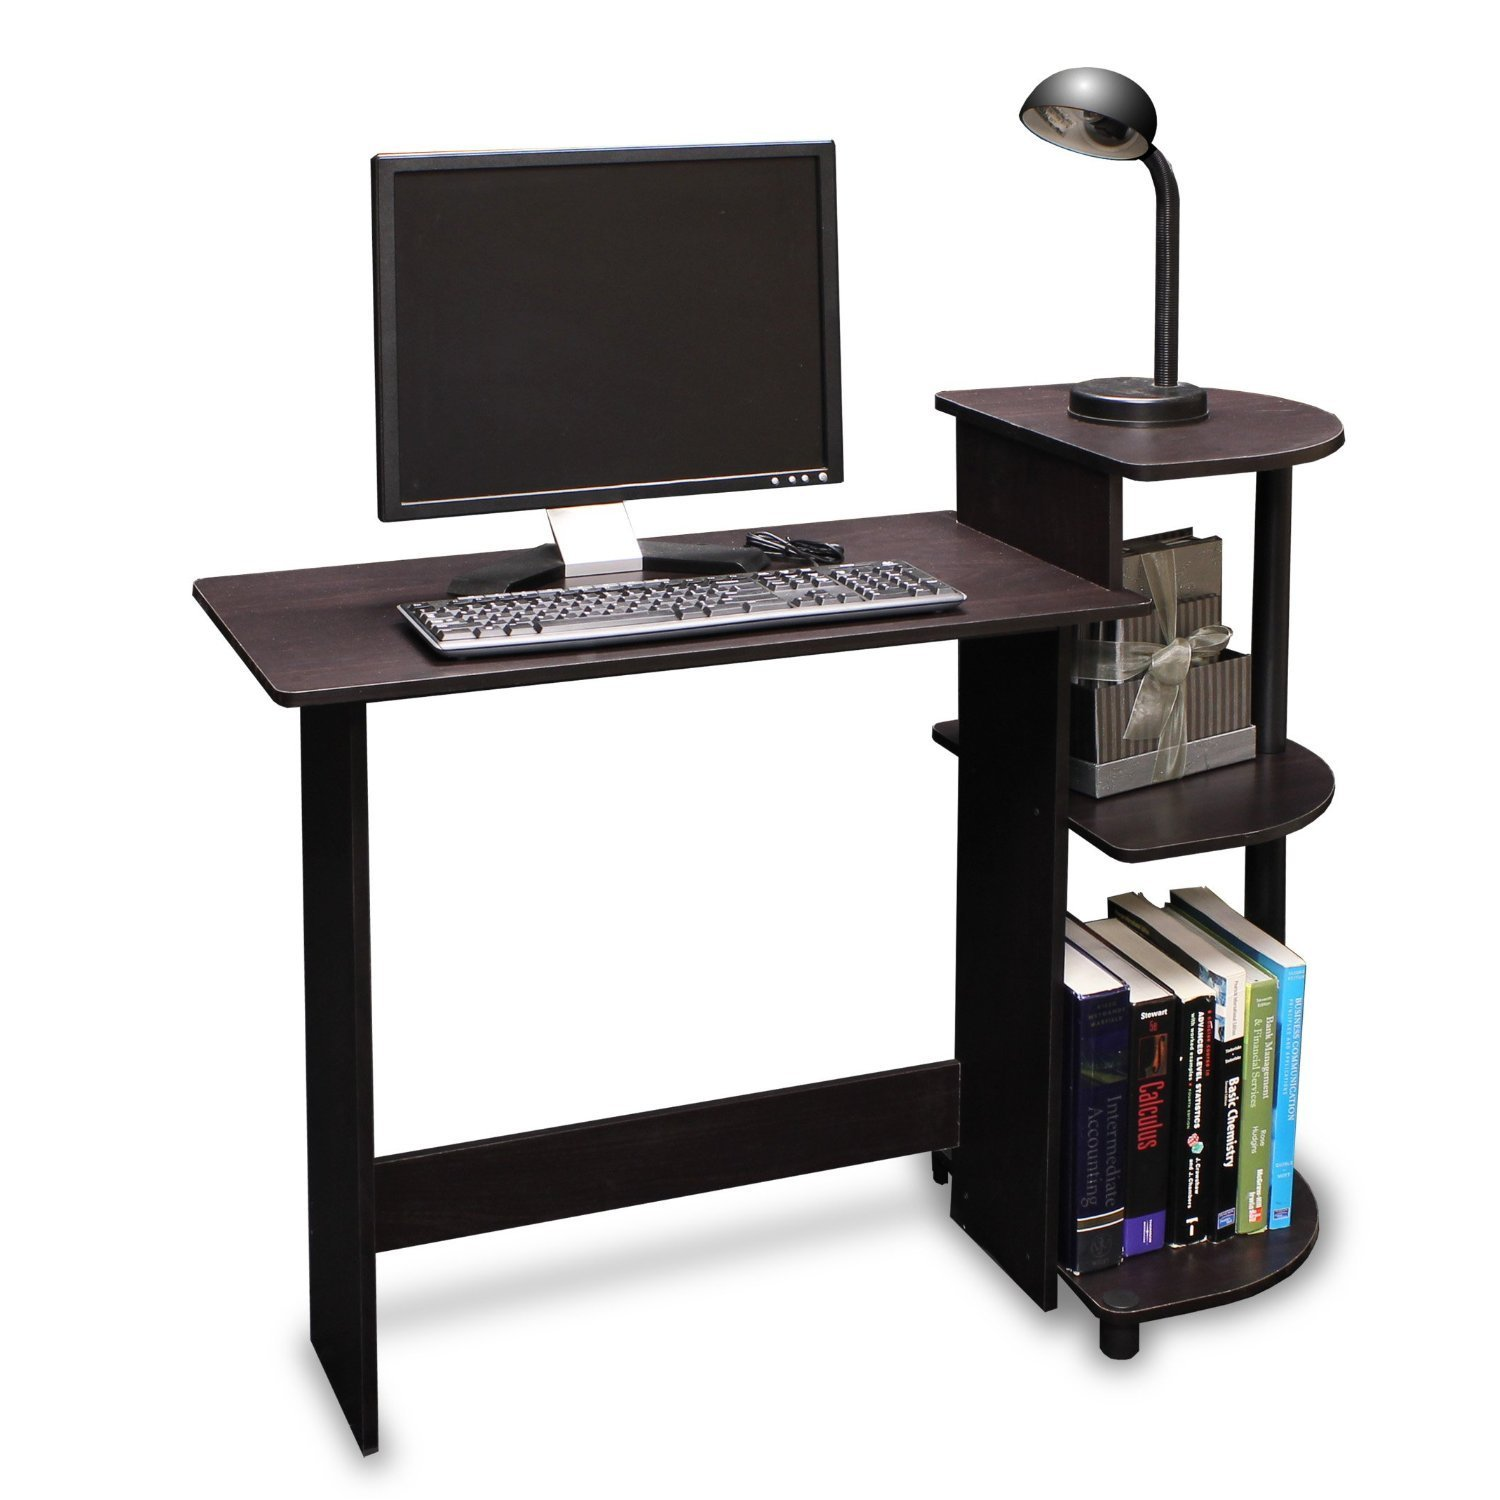 Space Saving Home Office Ideas with IKEA Desks for Small  : ikea wooden computer desks for small spaces home office with shelving for books and spot light from homesfeed.com size 1500 x 1500 jpeg 135kB